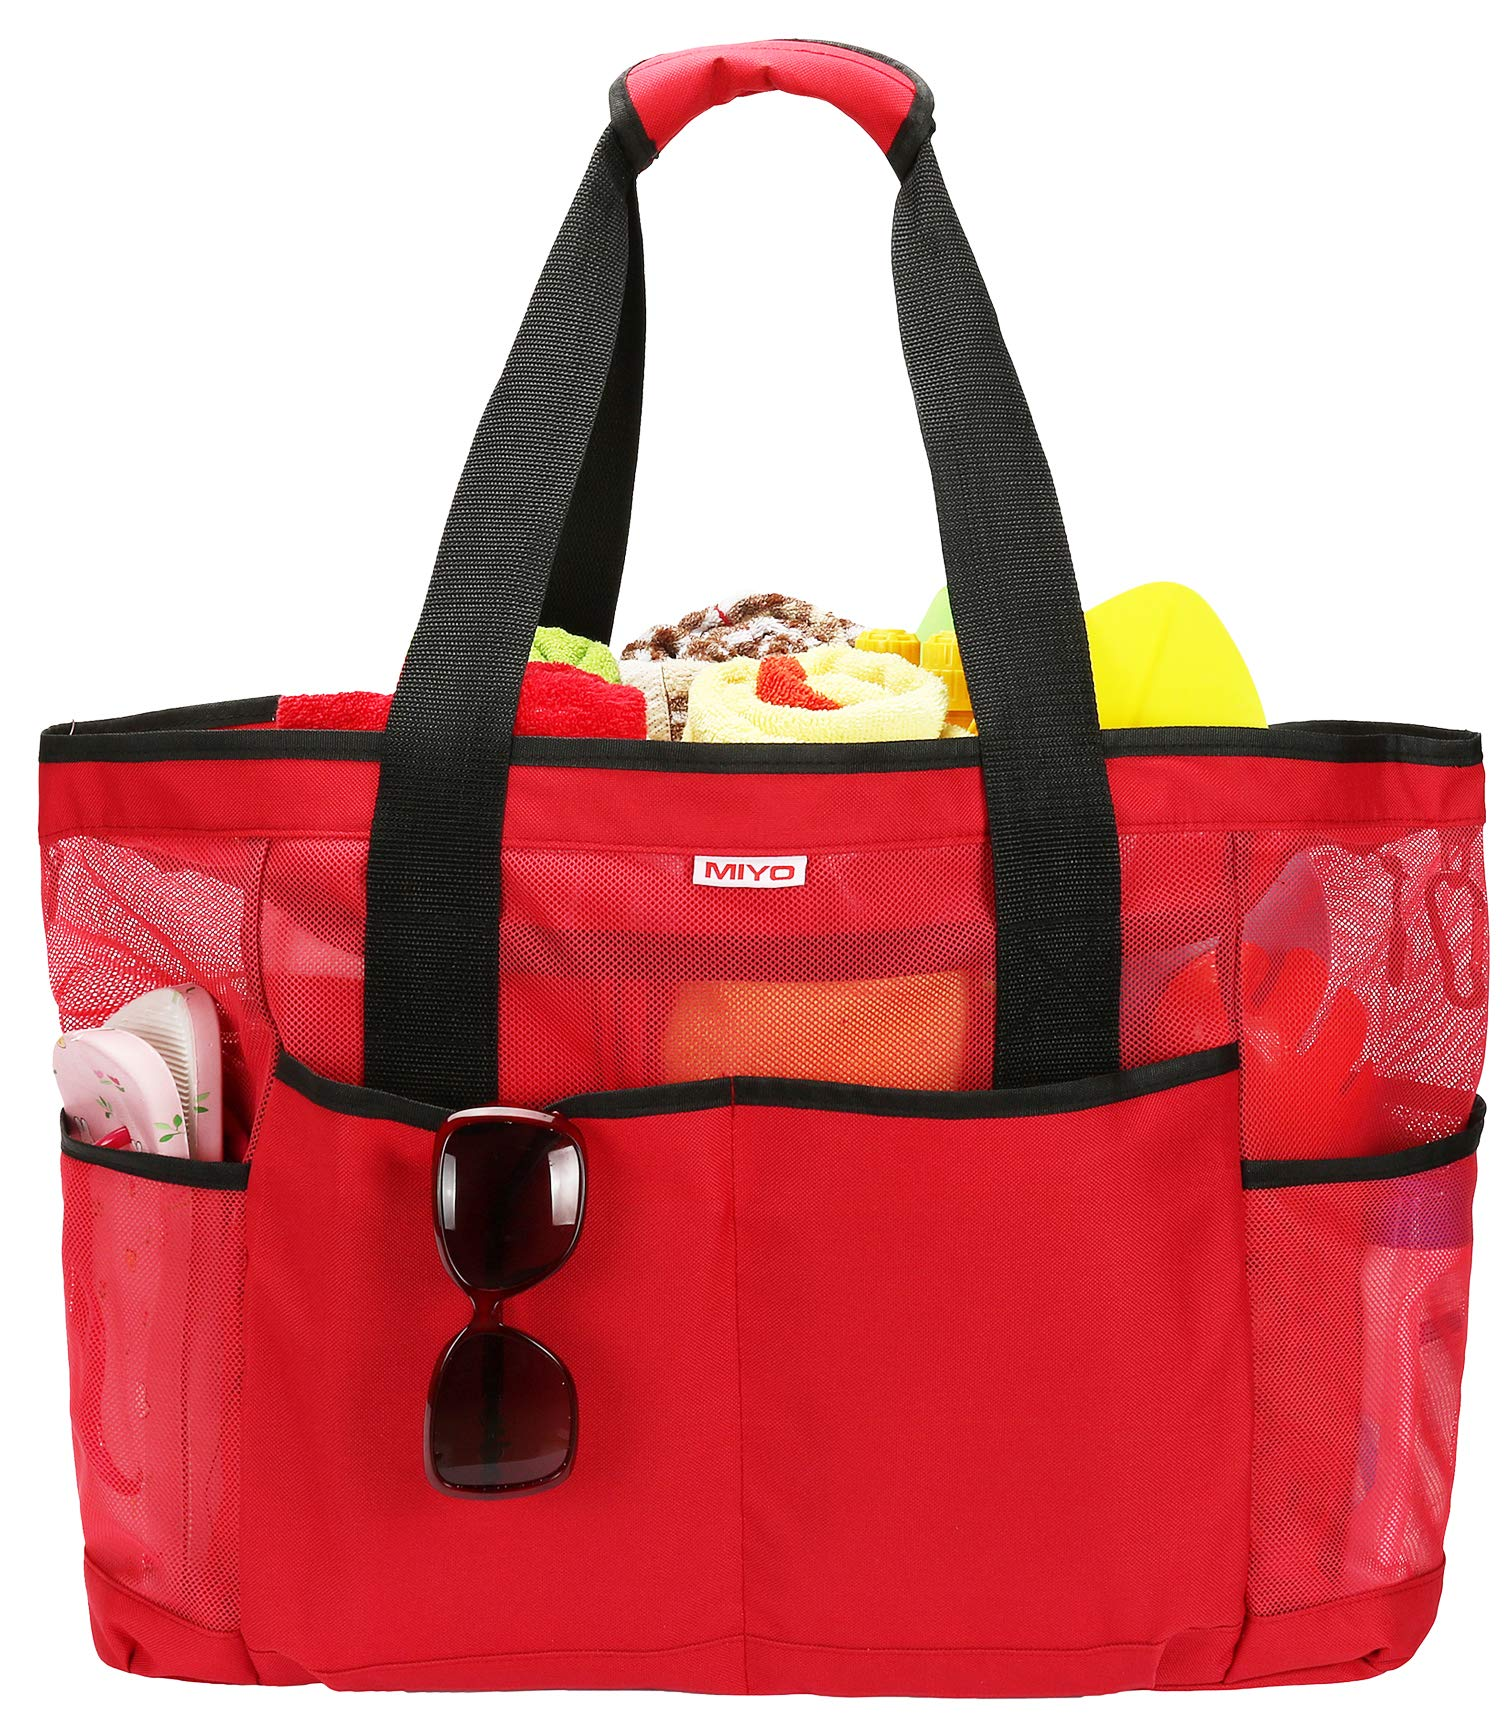 Mesh Beach Bag -Extra Large Beach Tote Bag - Grocery & Picnic Tote Travel Bags Red